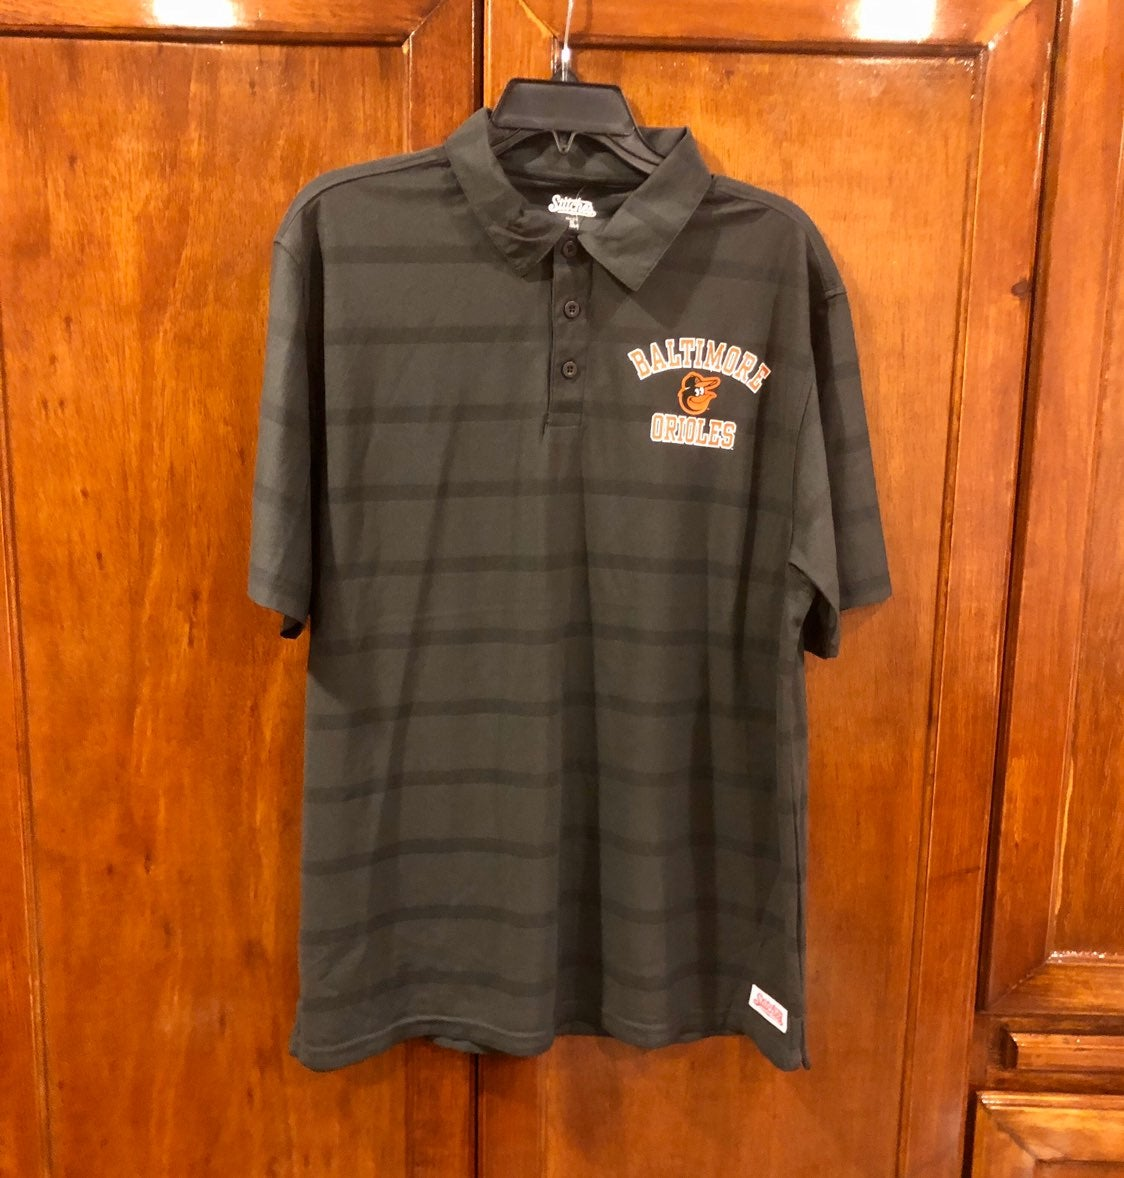 Stitches Baltimore Orioles Polo